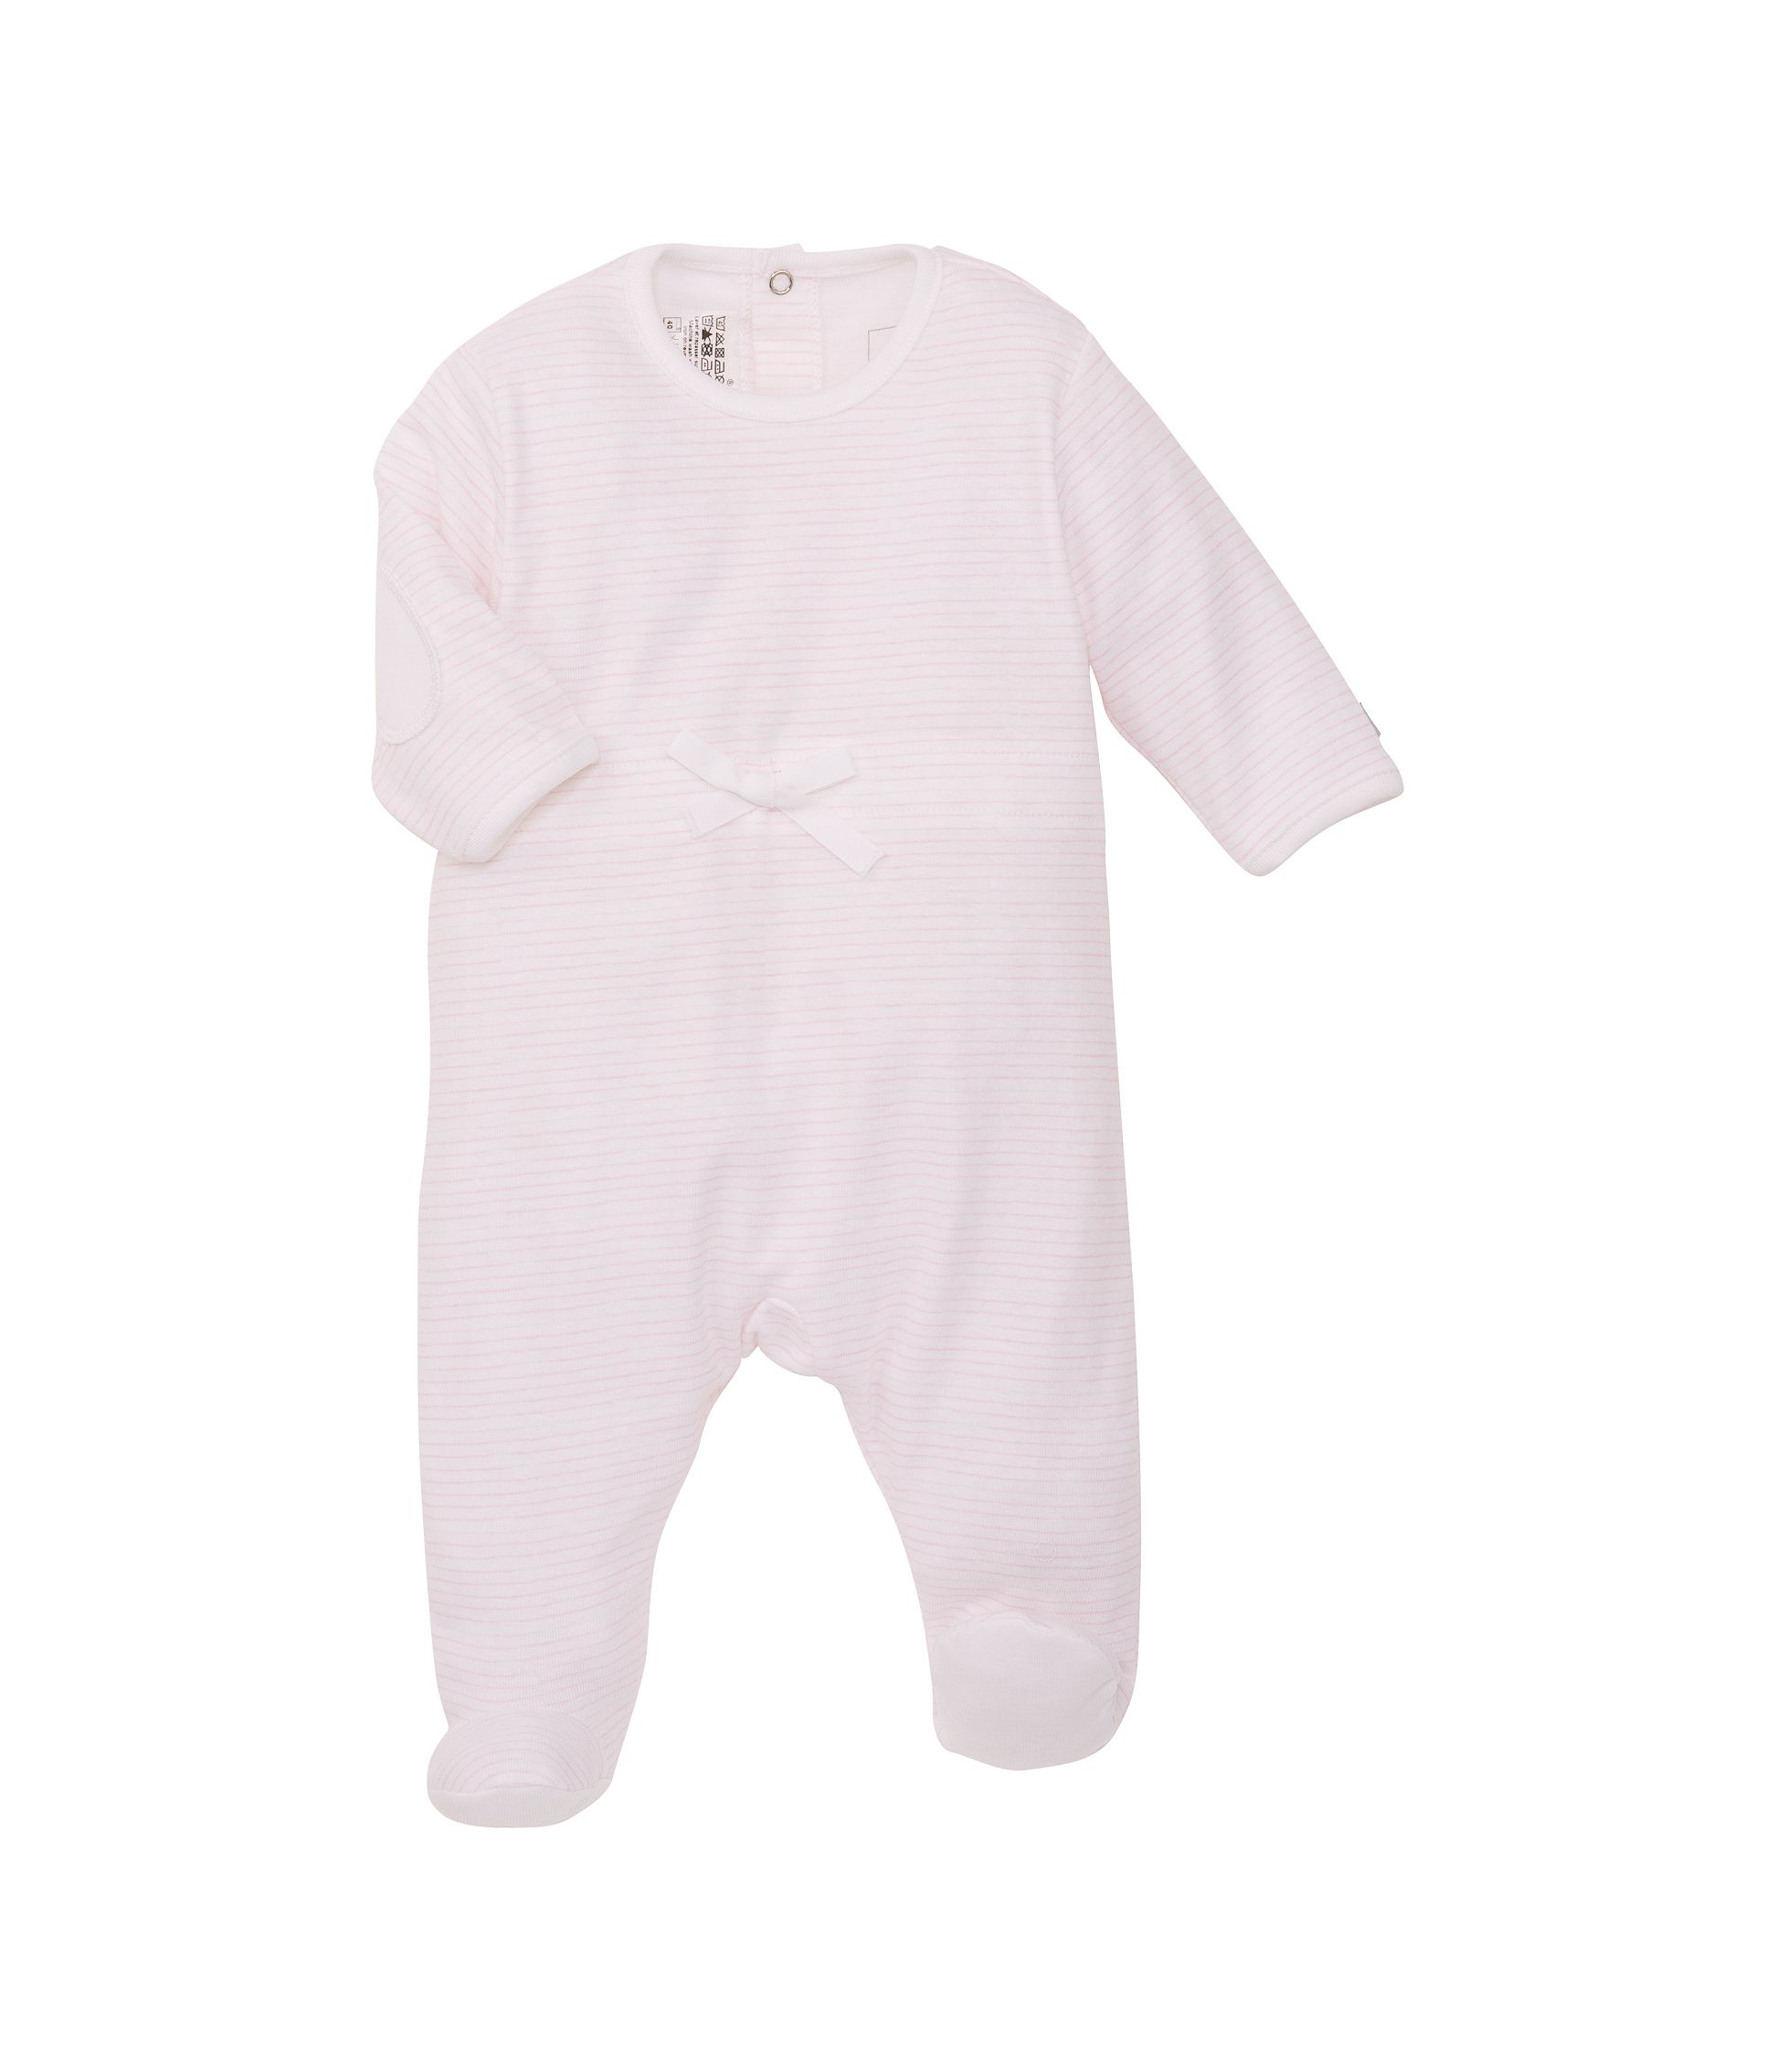 Baby boys painted stripe sleepsuit